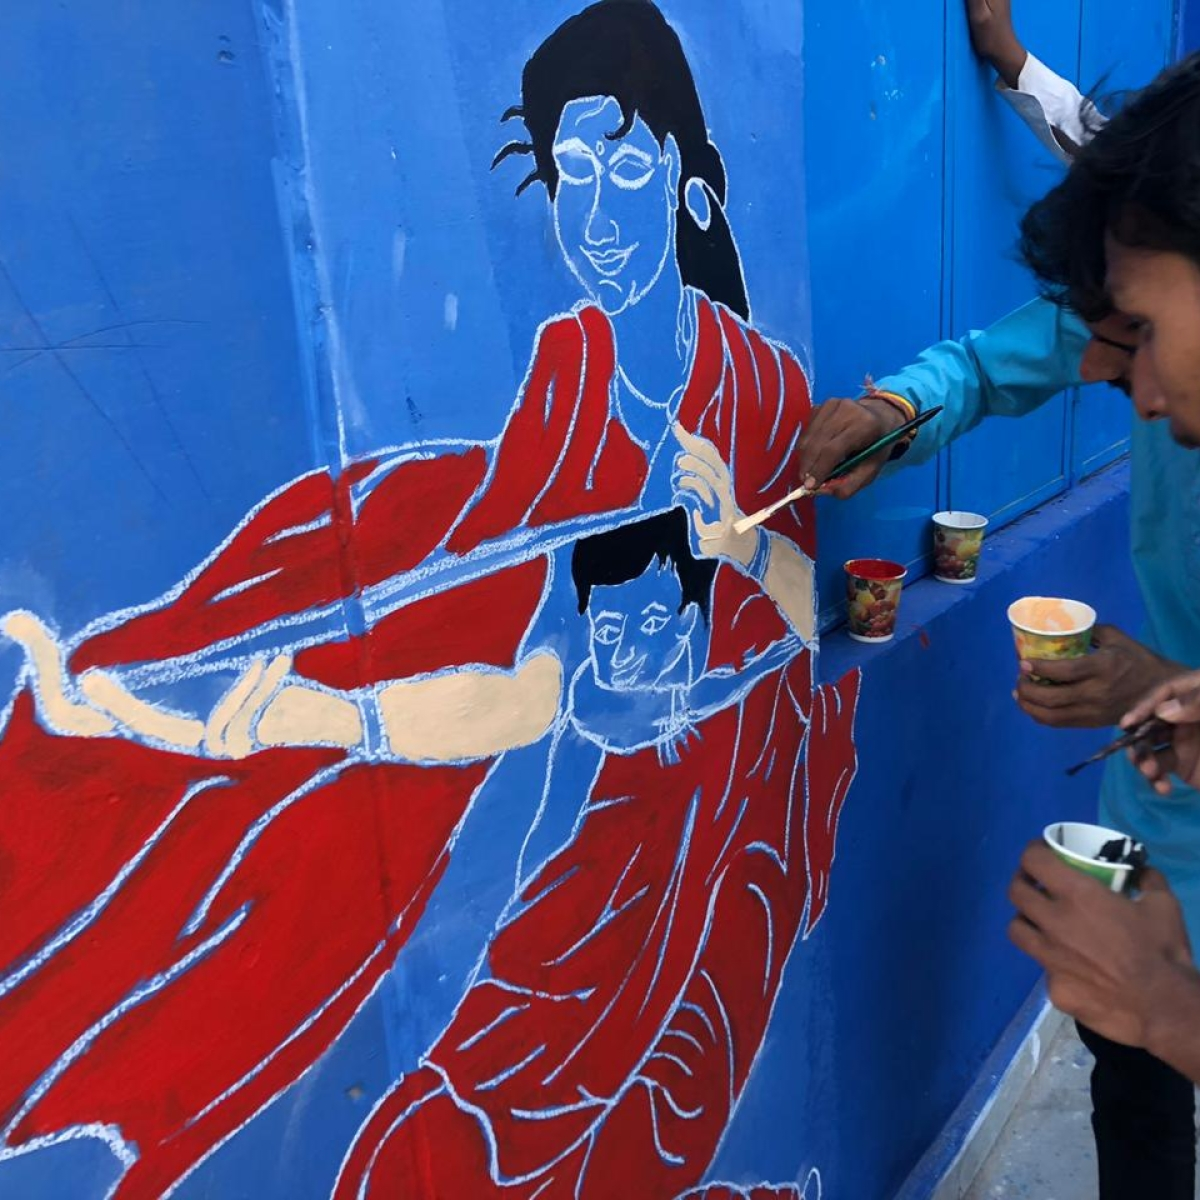 Bhopal: Messages of child rights painted walls of govt school